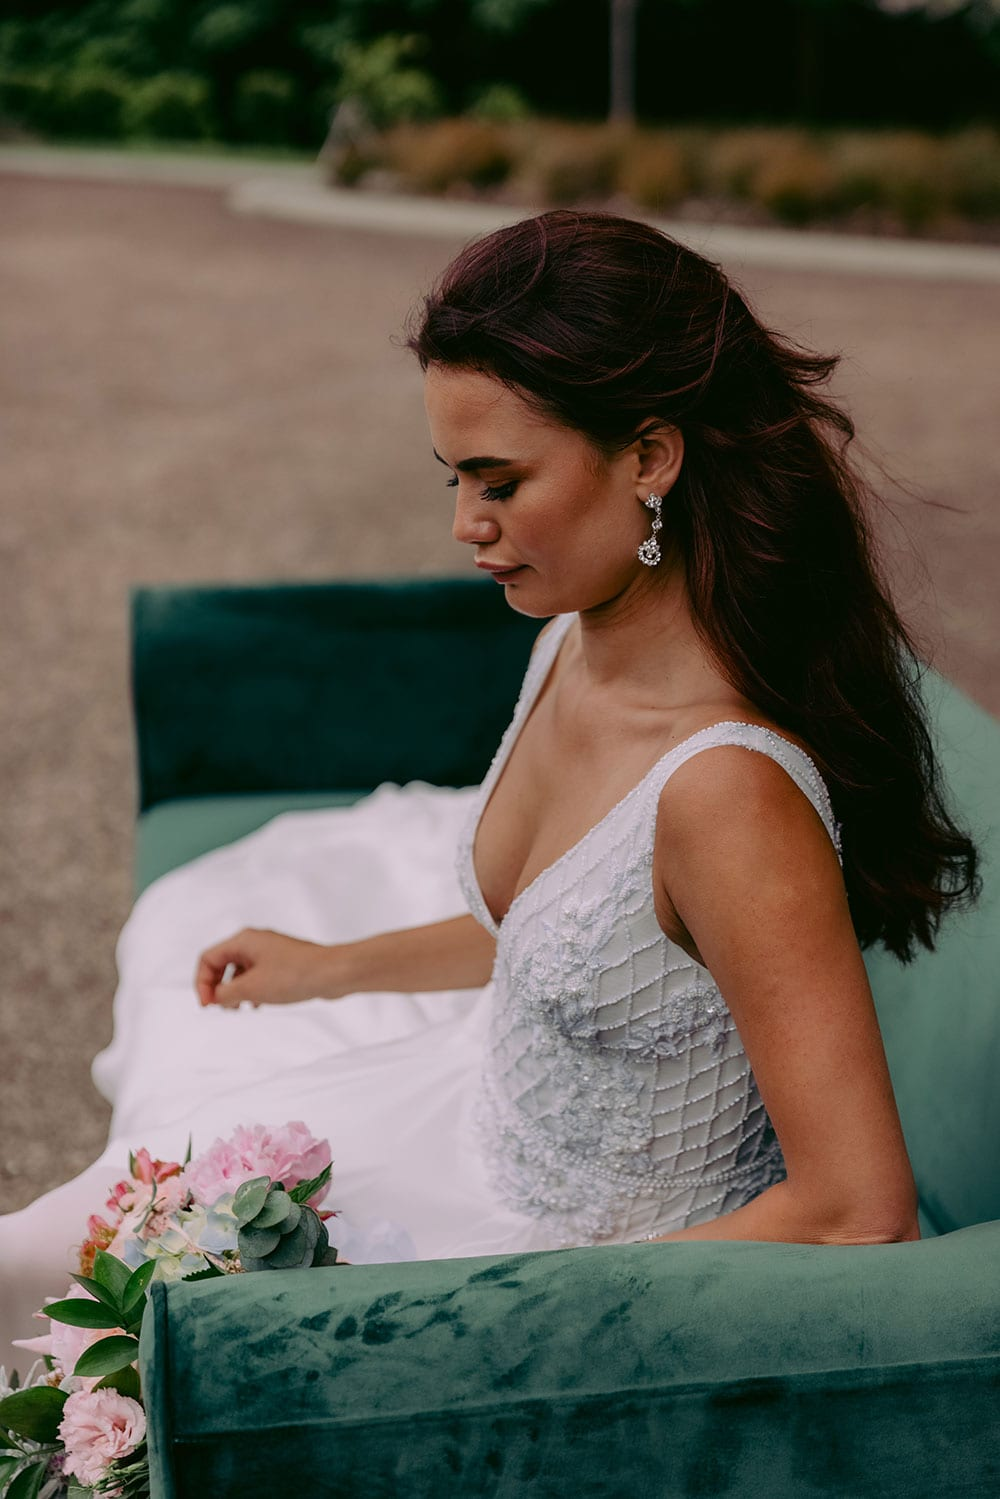 Reihana Wedding gown from Vinka Design - This stunning wedding dress features beautiful hand-appliqued beaded lace, a V-shaped neckline and low V-shaped back. The skirt is the epitome of elegance in dreamy silk chiffon, with an optional split. Model wearing gown while sitting on long sofa.